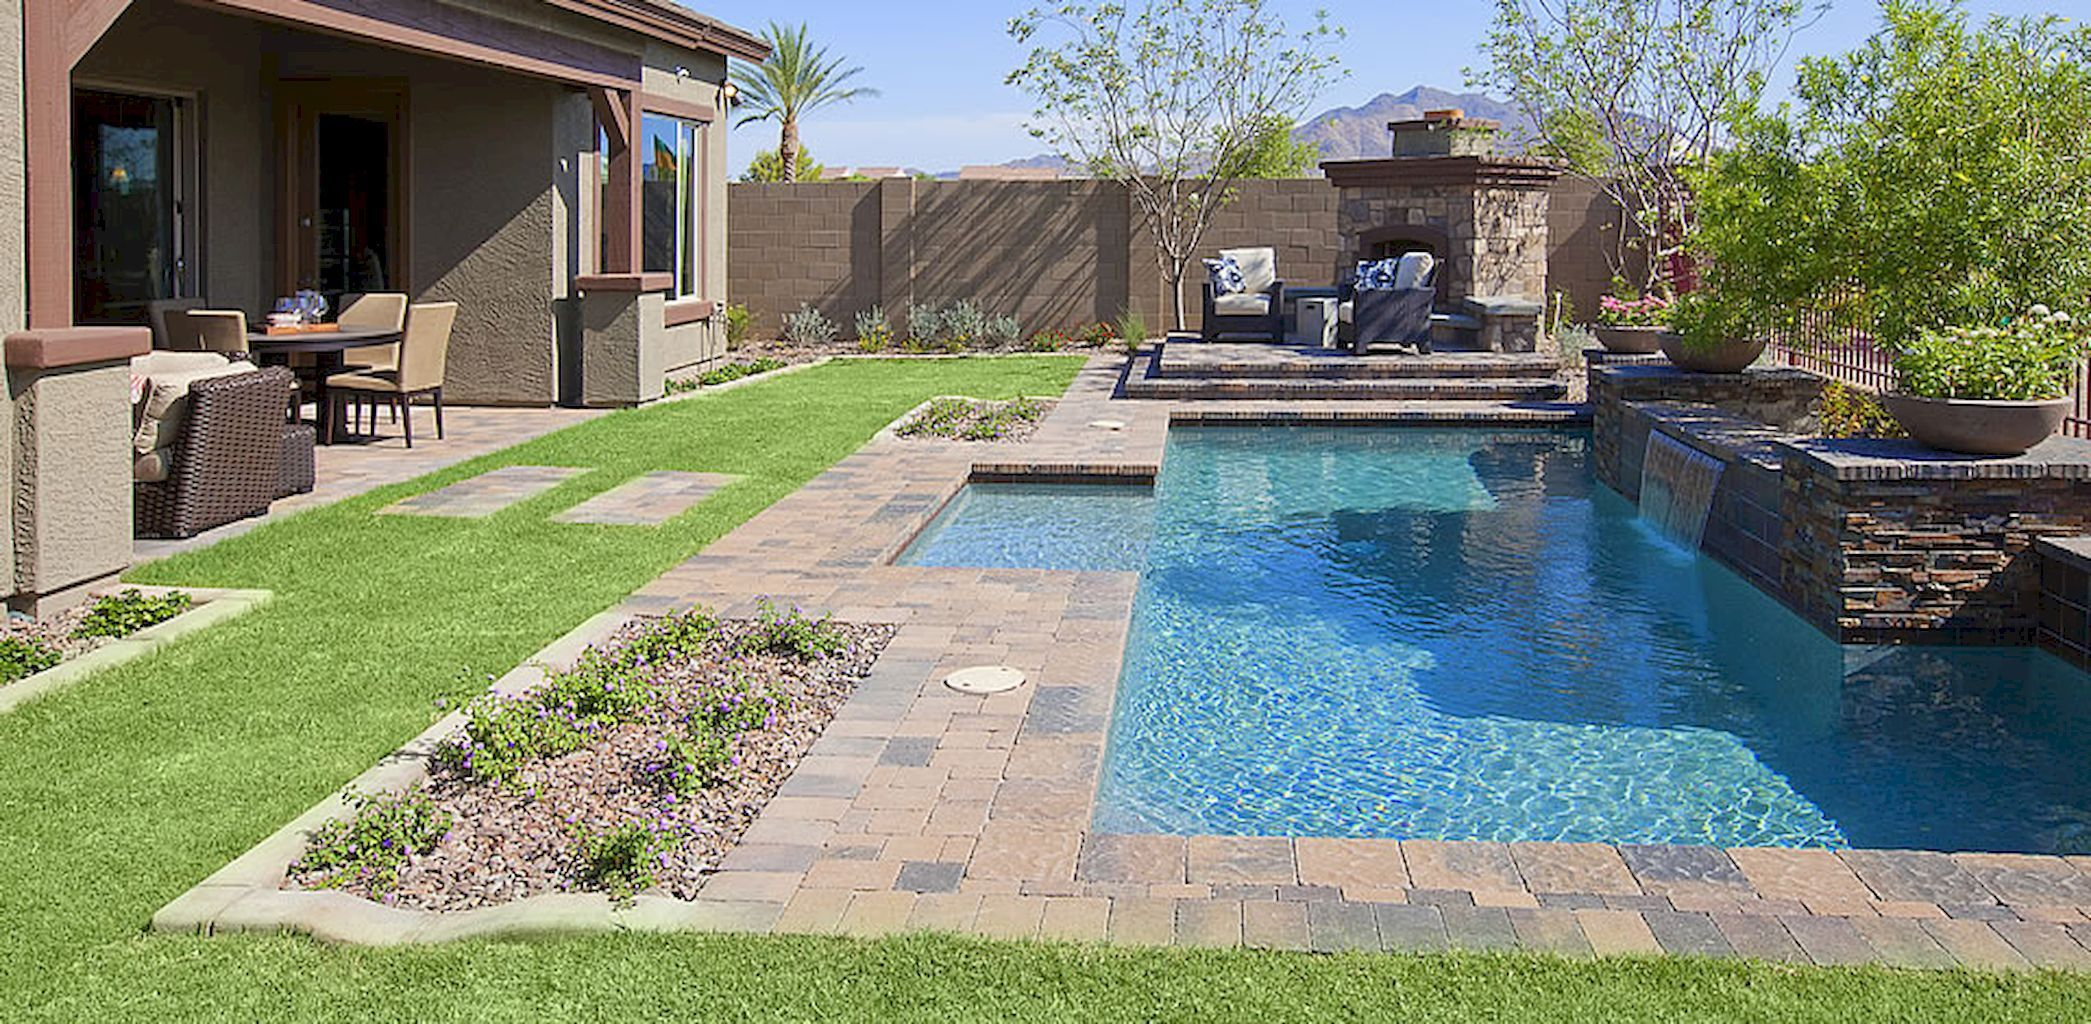 40 Arizona Backyard Ideas On A Budget 33 Arizona Backyard